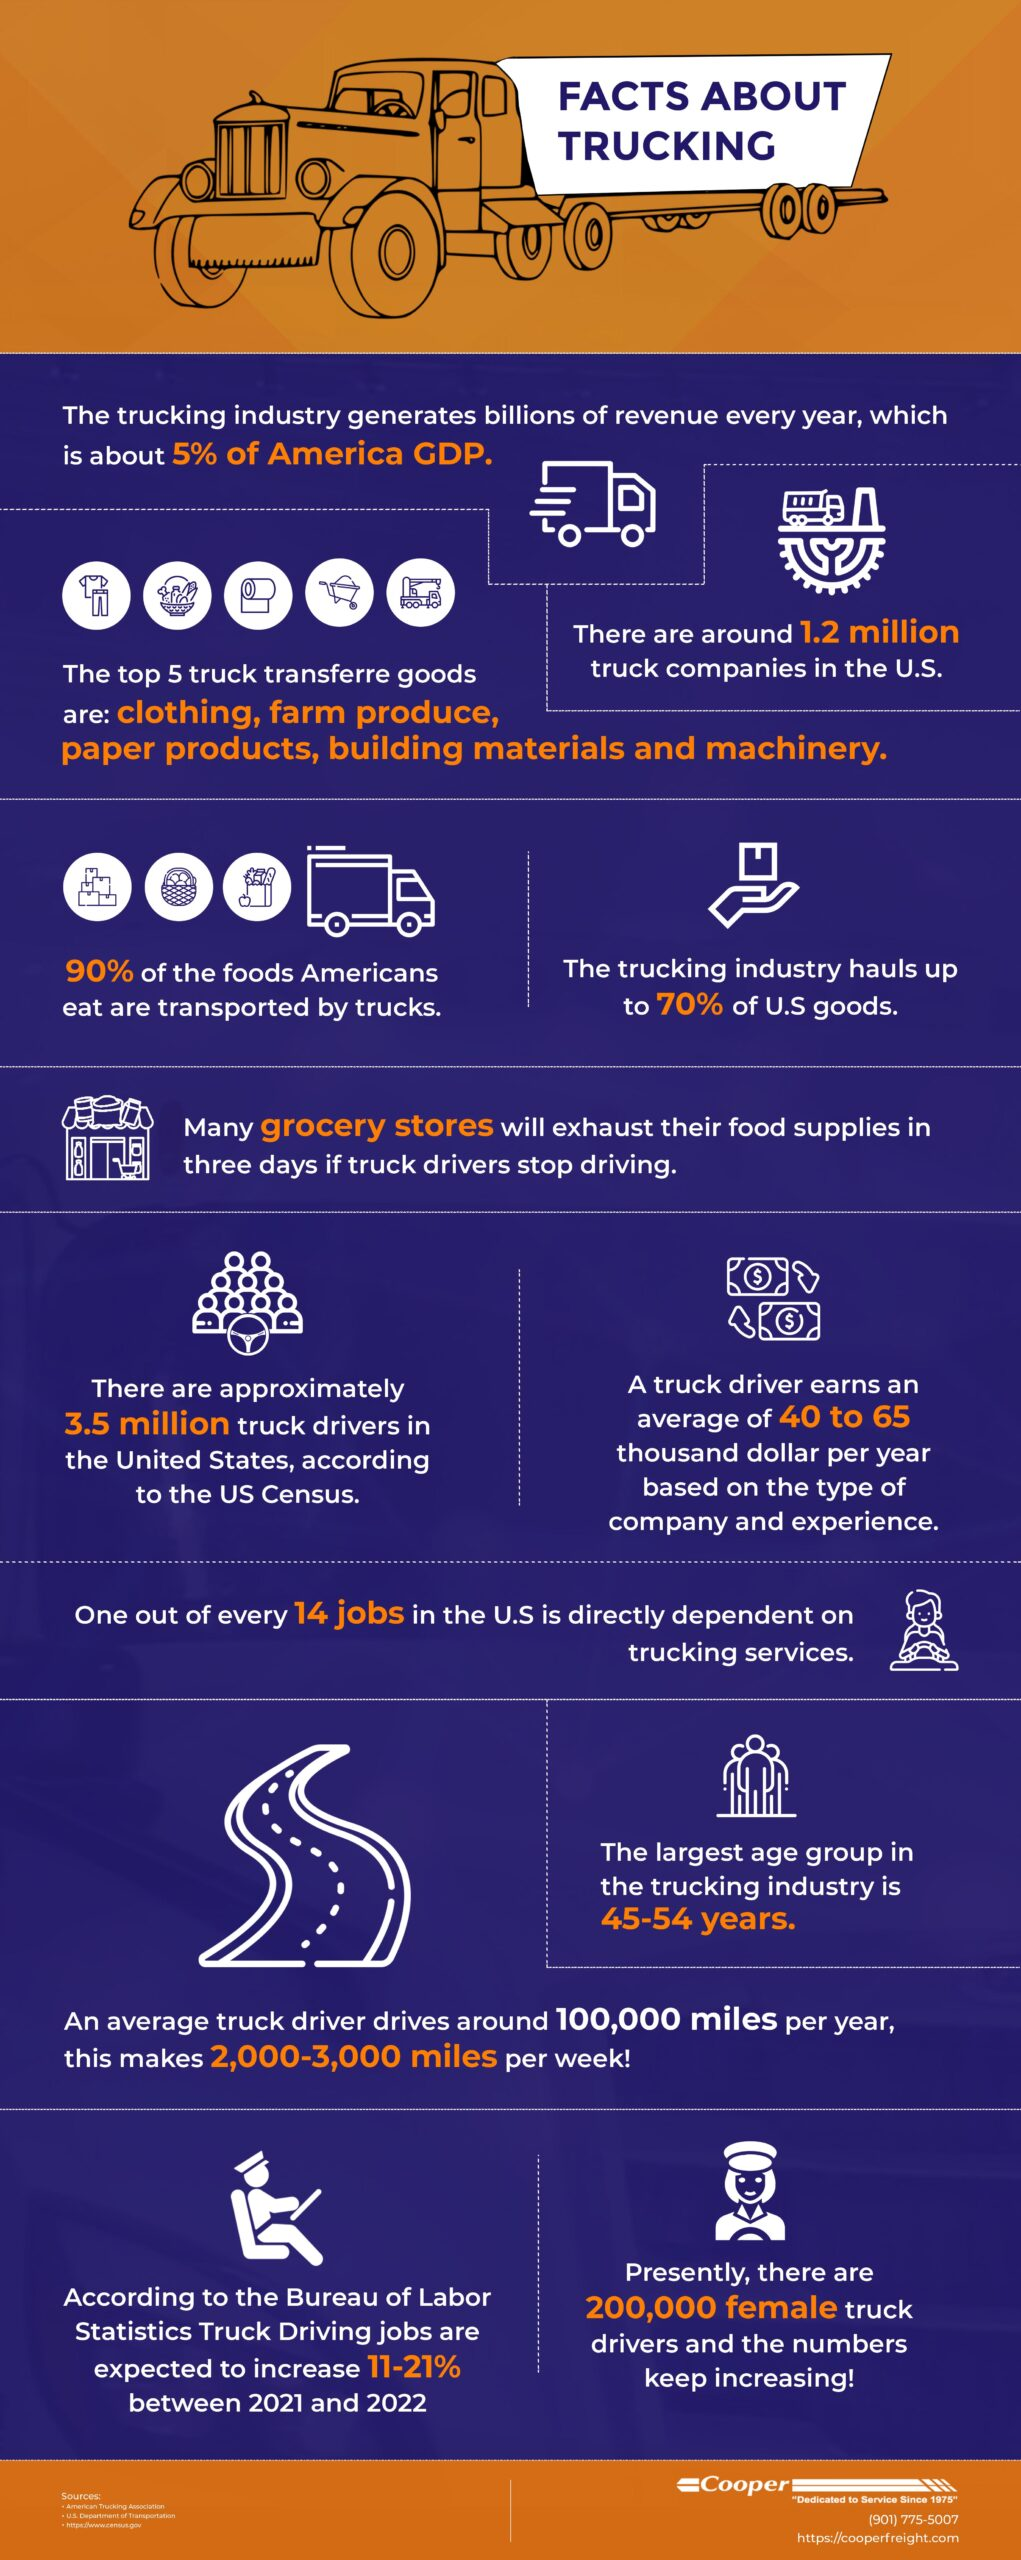 Facts About Trucking 2021